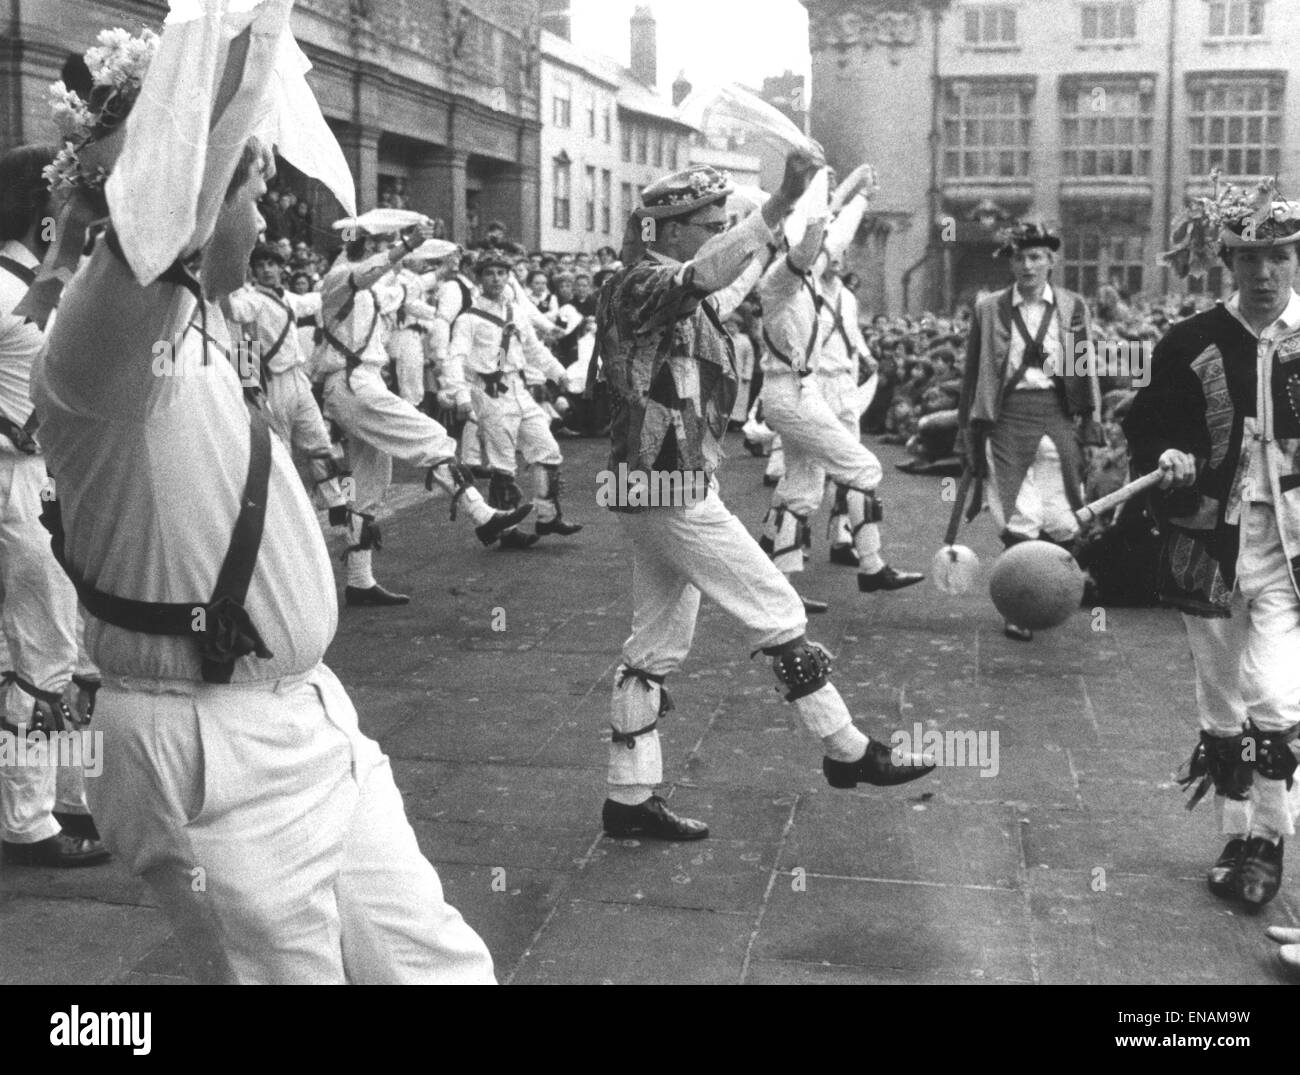 FILE PHOTOS: Oxford, Oxfordshire, UK. 1st May, 1968. Oxford May Morning. May Day Morris dancers in Broad Street, - Stock Image